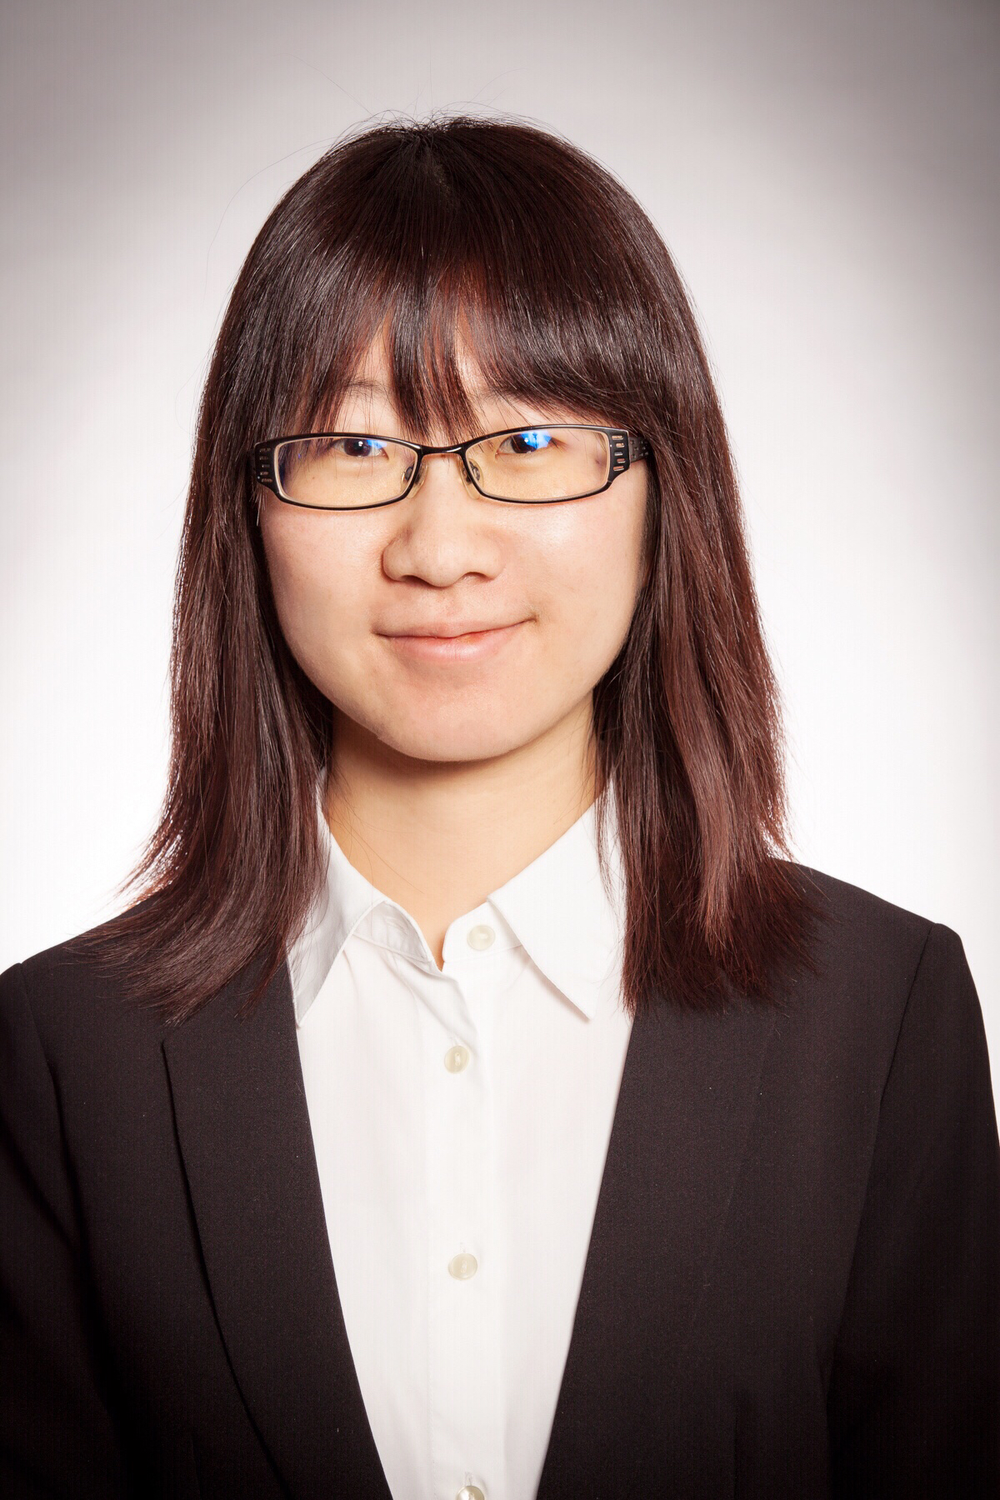 Yunong Zheng | Slashies Speaker  - NYU MPA | Associate at AtheneumYunong Zheng is an Associate at Atheneum and a pro bono consultant. Born in the northeast of China, raised in Shanghai, educated and employed in Hong Kong, Yunong moved to New York in 2015. She holds an MPA degree from New York University and Bachelor Degree of Social Sciences from University of Hong Kong.With a strong interest in the intersection of private sector and social sector, Yunong has interned/worked in a variety of companies, B-Corps, NGOs such as United Nations, Cause Strategy, Ashoka. She explored her interest by working on CSR projects with OFO in China, toilet building projects in Ghana, economic development projects in India and digital finance programs in Asian Pacific & Africa. In leisure time, Yunong serves as a pro bono consultant for multiple organizations in NYC. Recently she joined Harvard SEED as a Business Development Specialist.